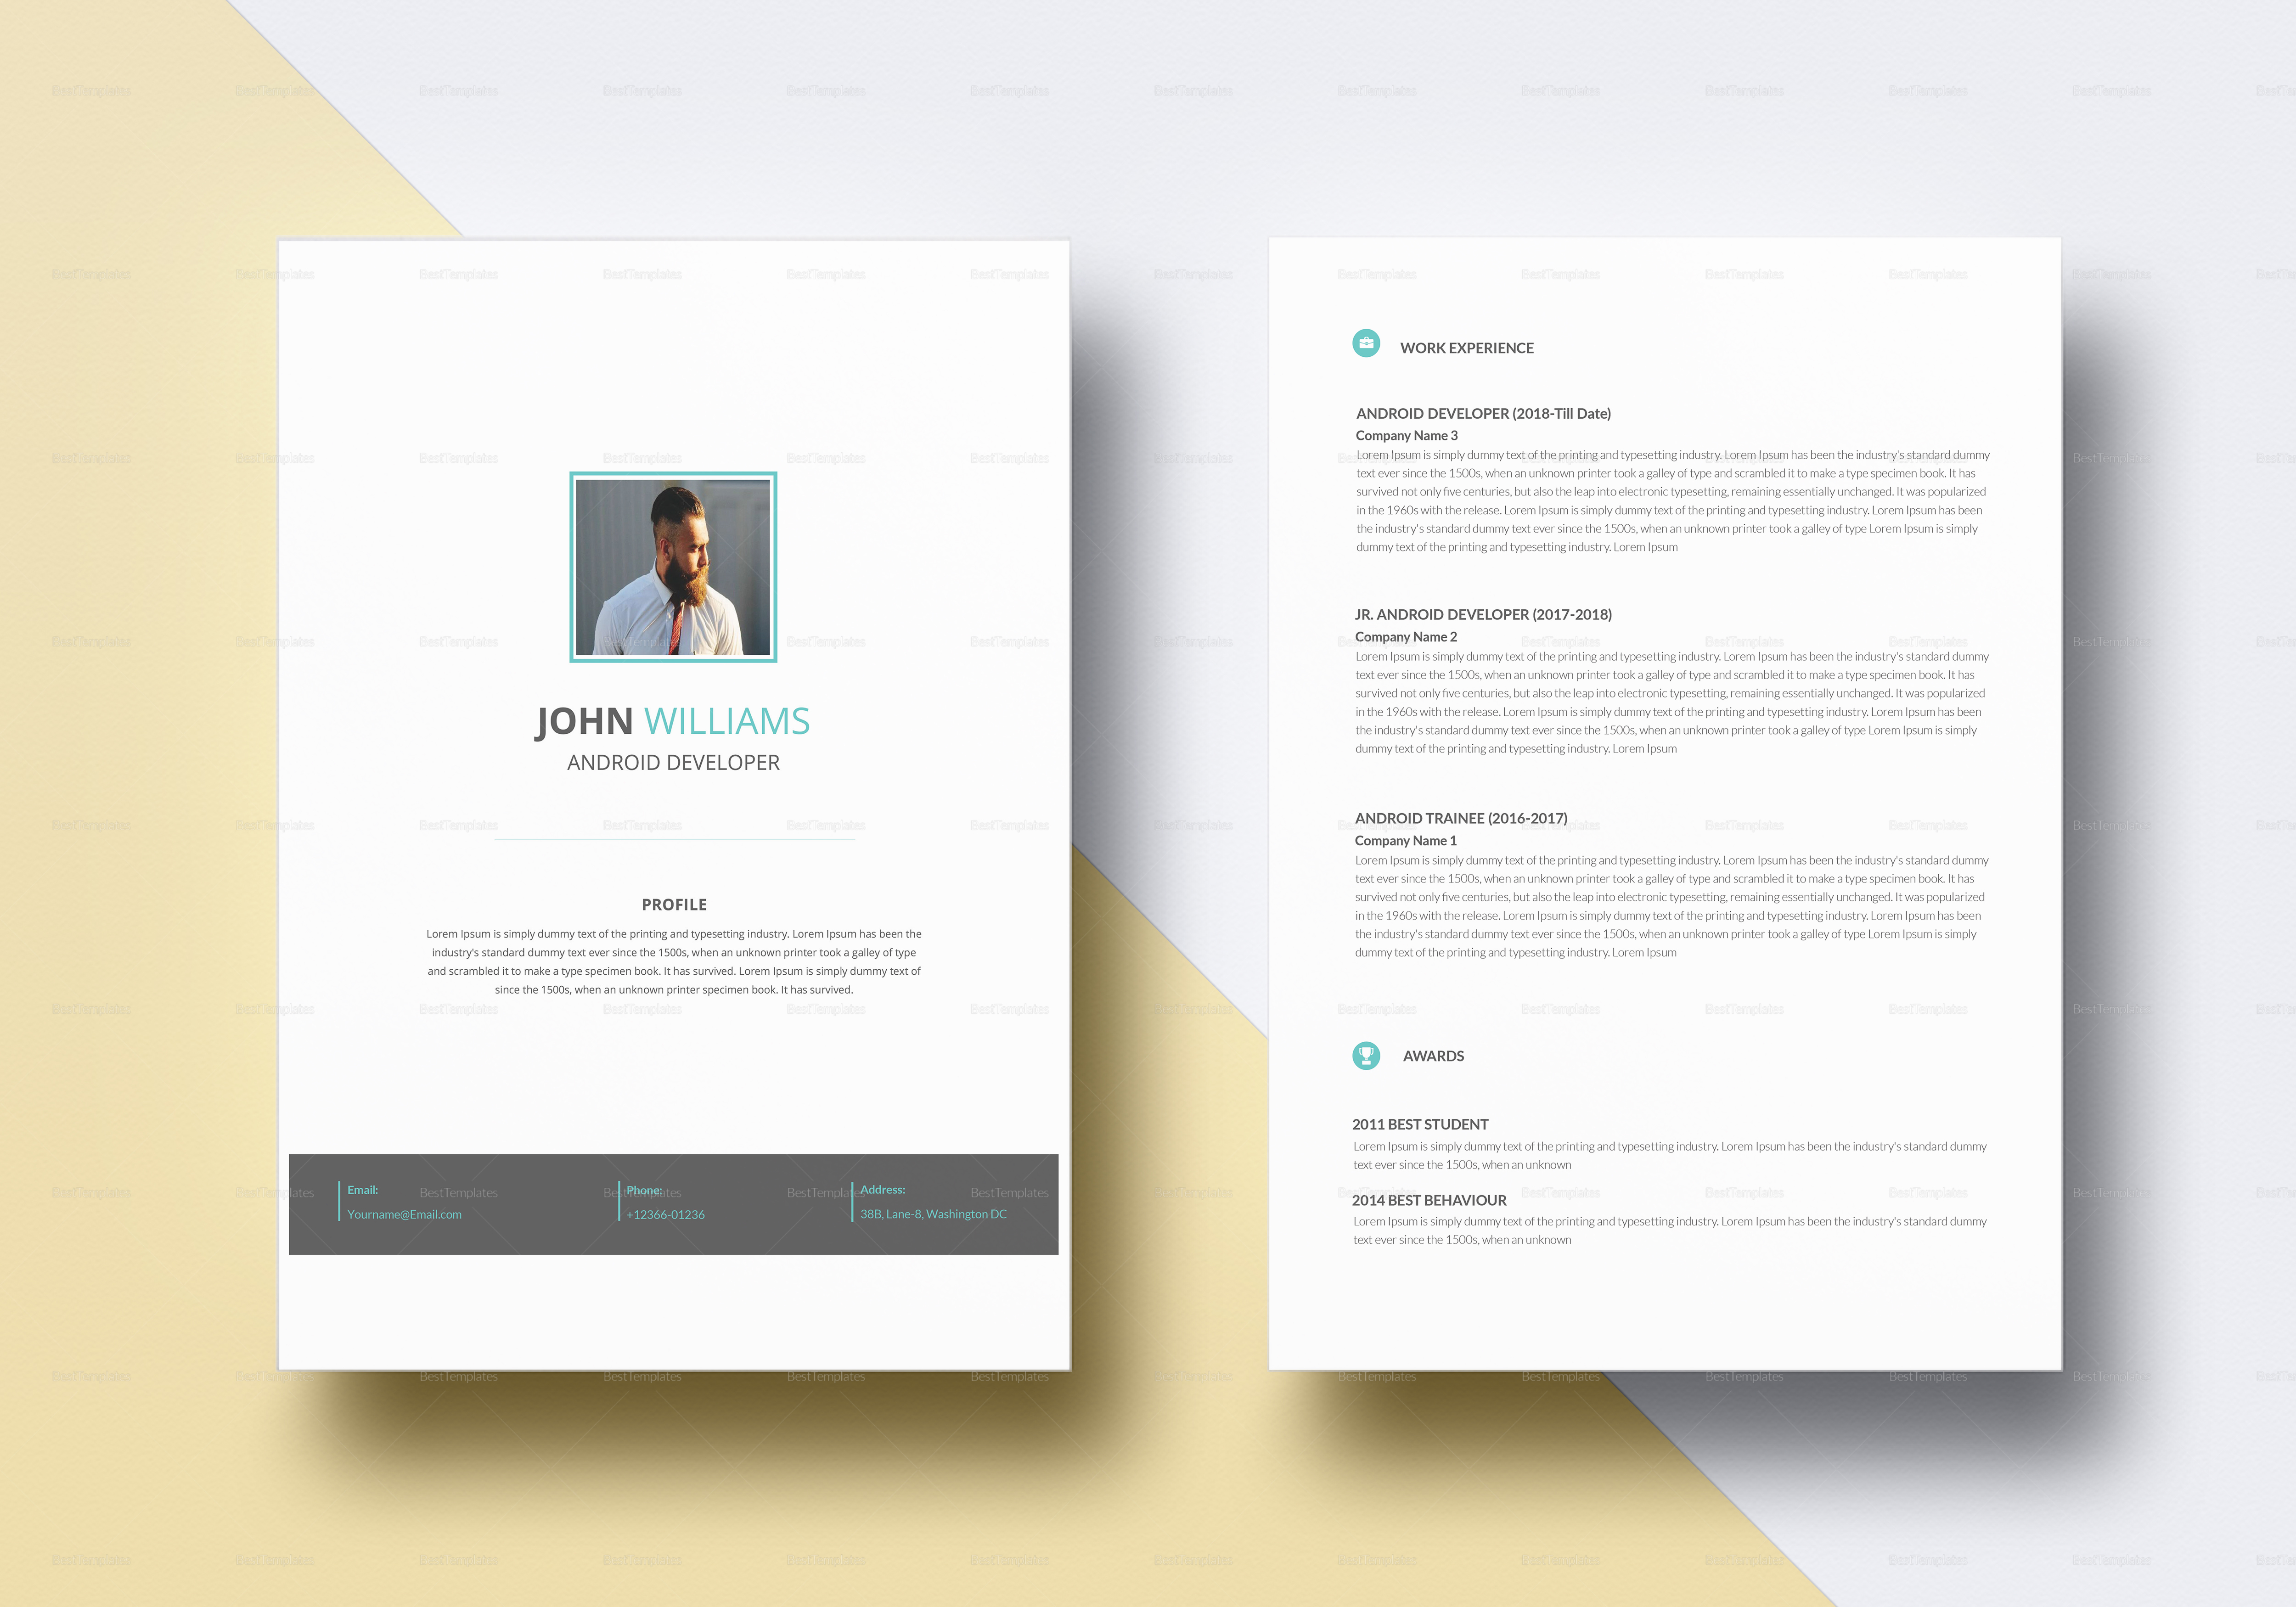 professional android developer resume template professional android developer resume template - Android Developer Resume